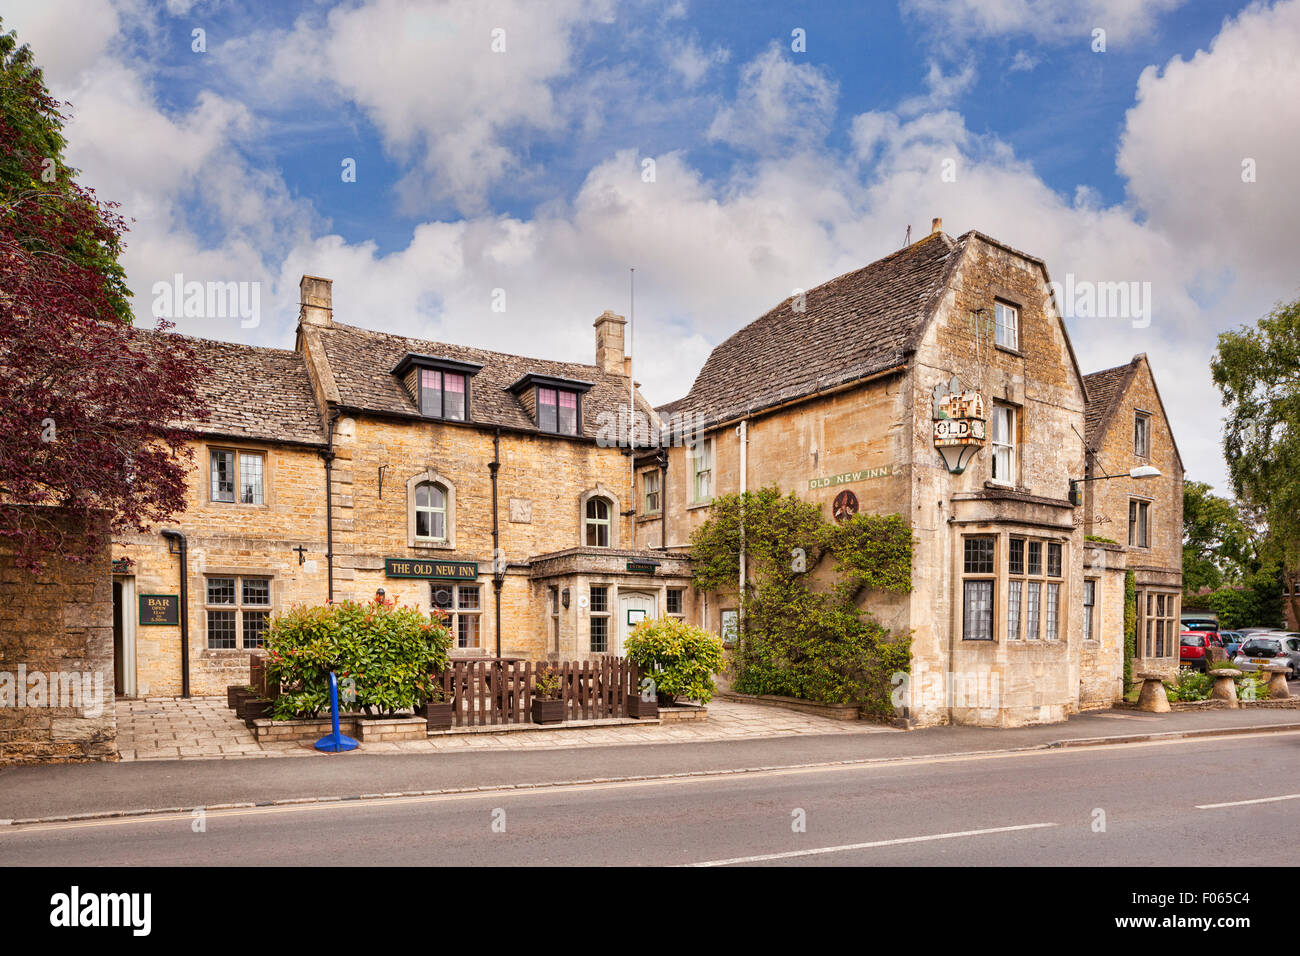 The Old New Inn, Bourton-on-the-Water, Gloucestershire, England - Stock Image